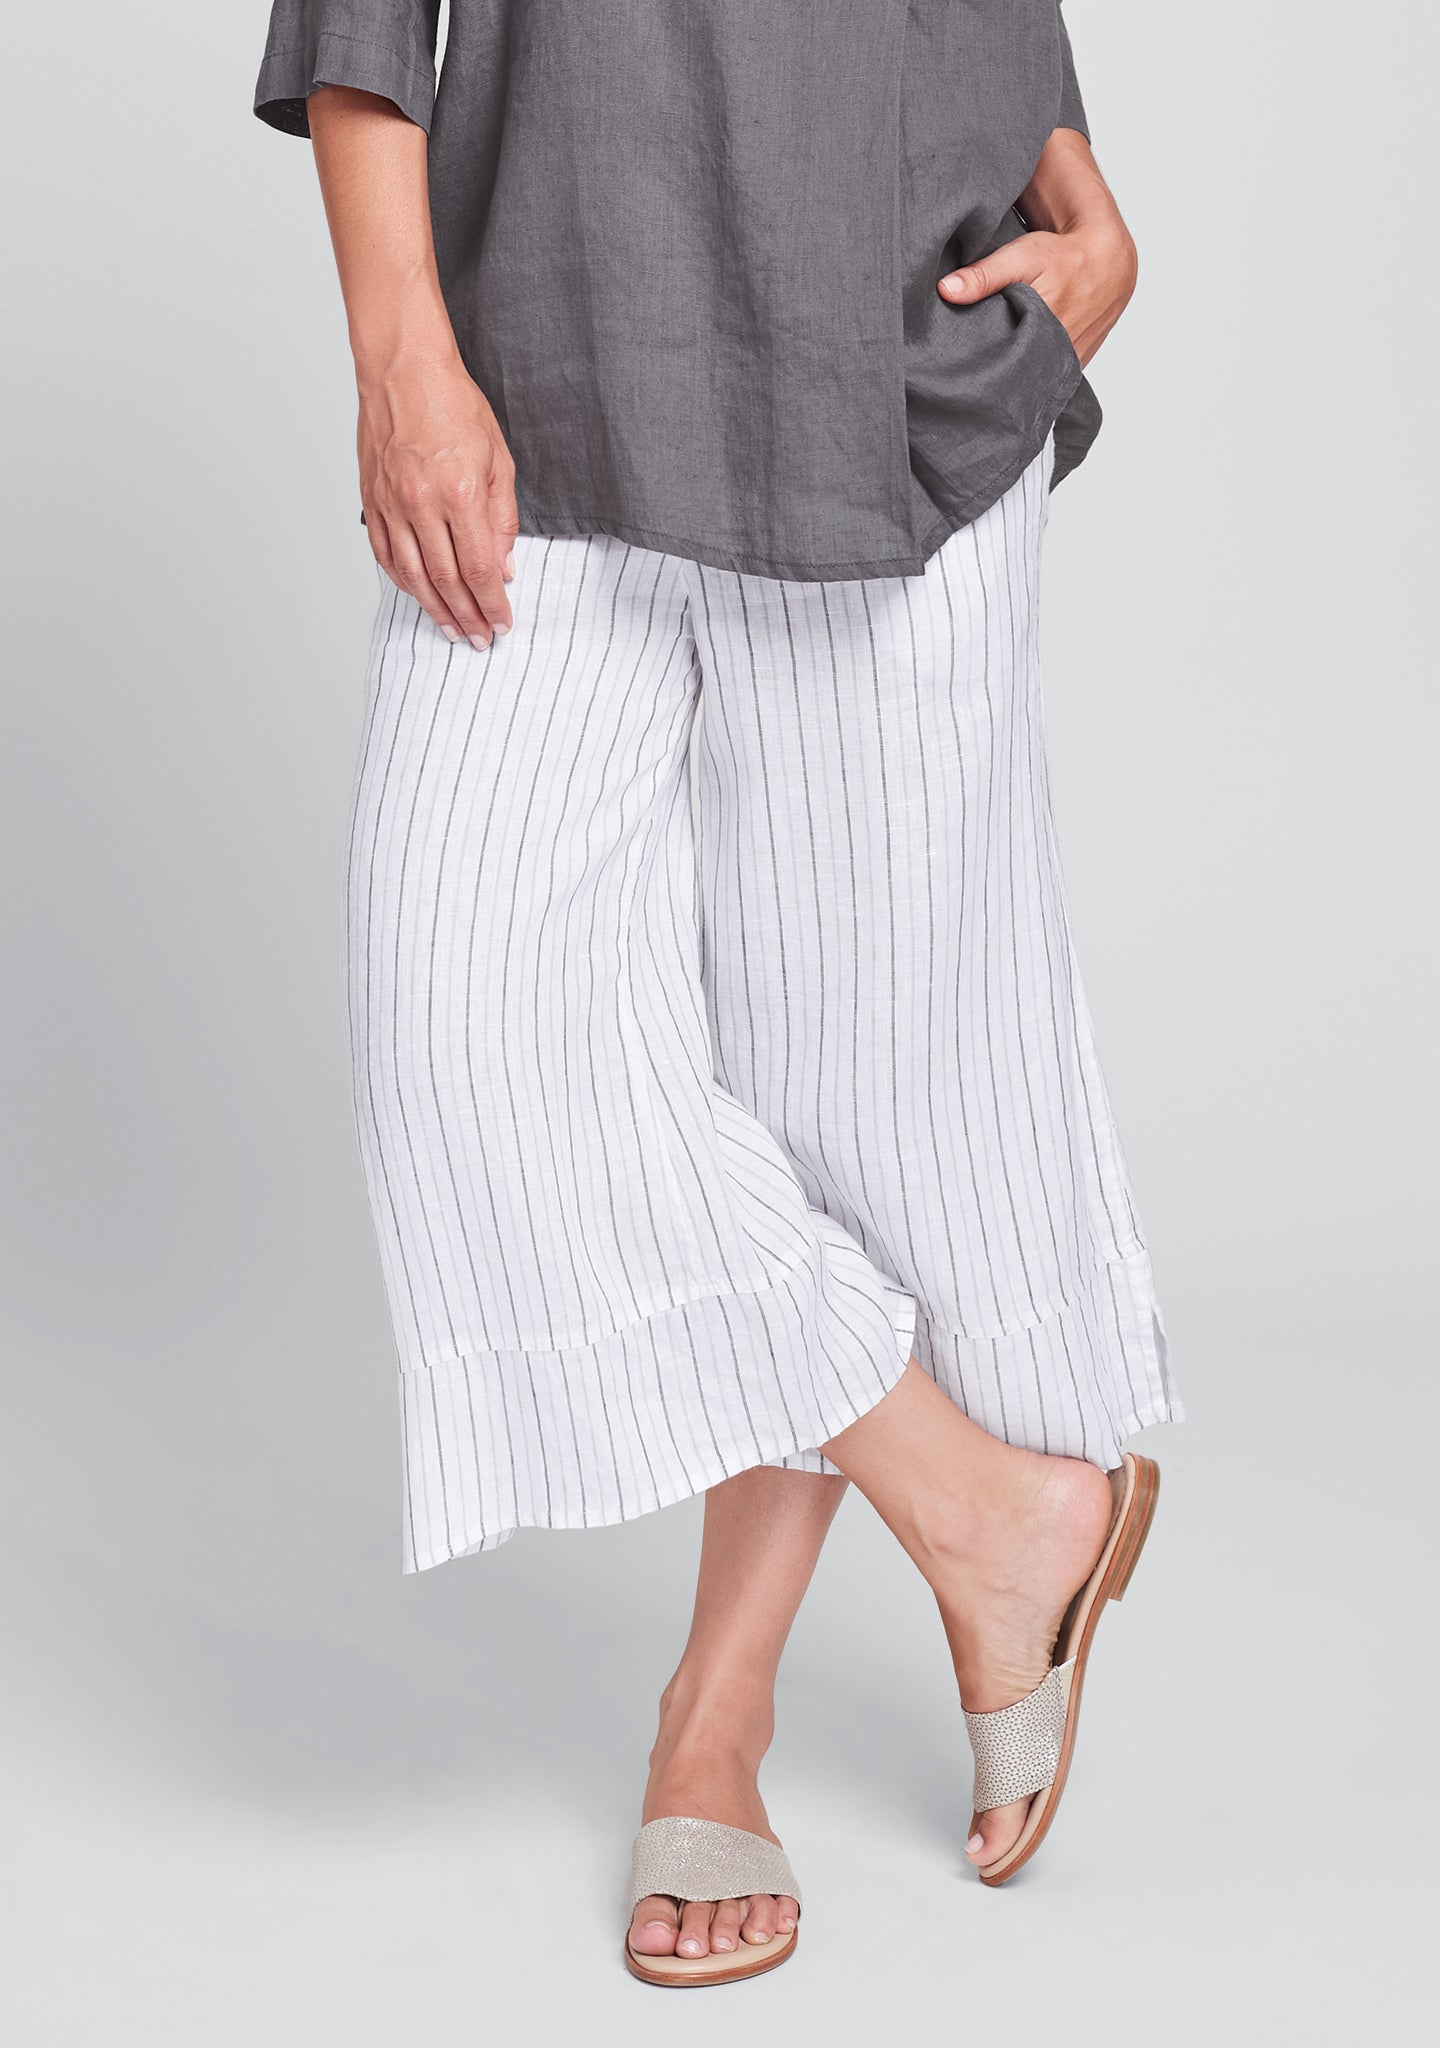 bloom pant linen pants with elastic waist grey